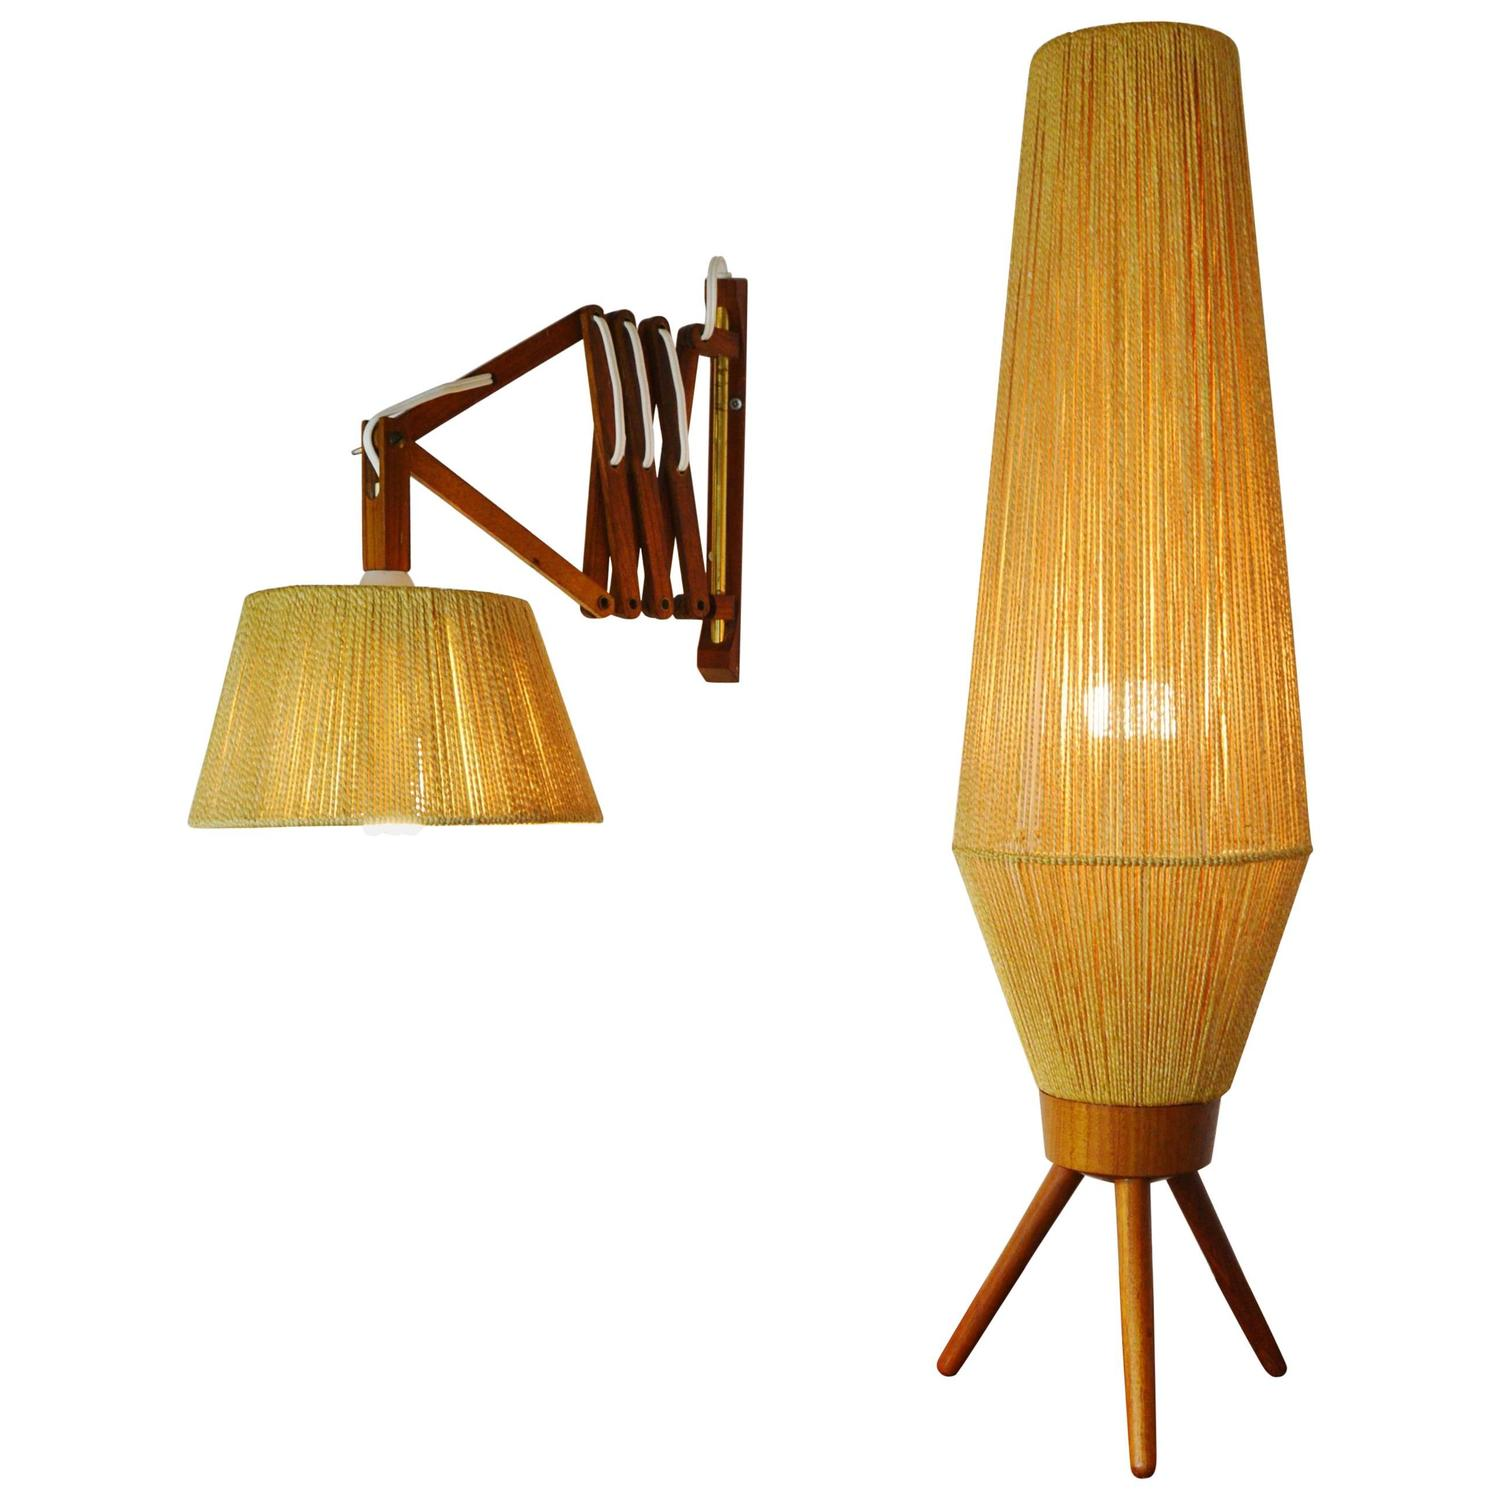 Wall Mounted Accordion Lamps : Teak and Jute Table/Floor Lamp and Accordion Wall Lamp For Sale at 1stdibs